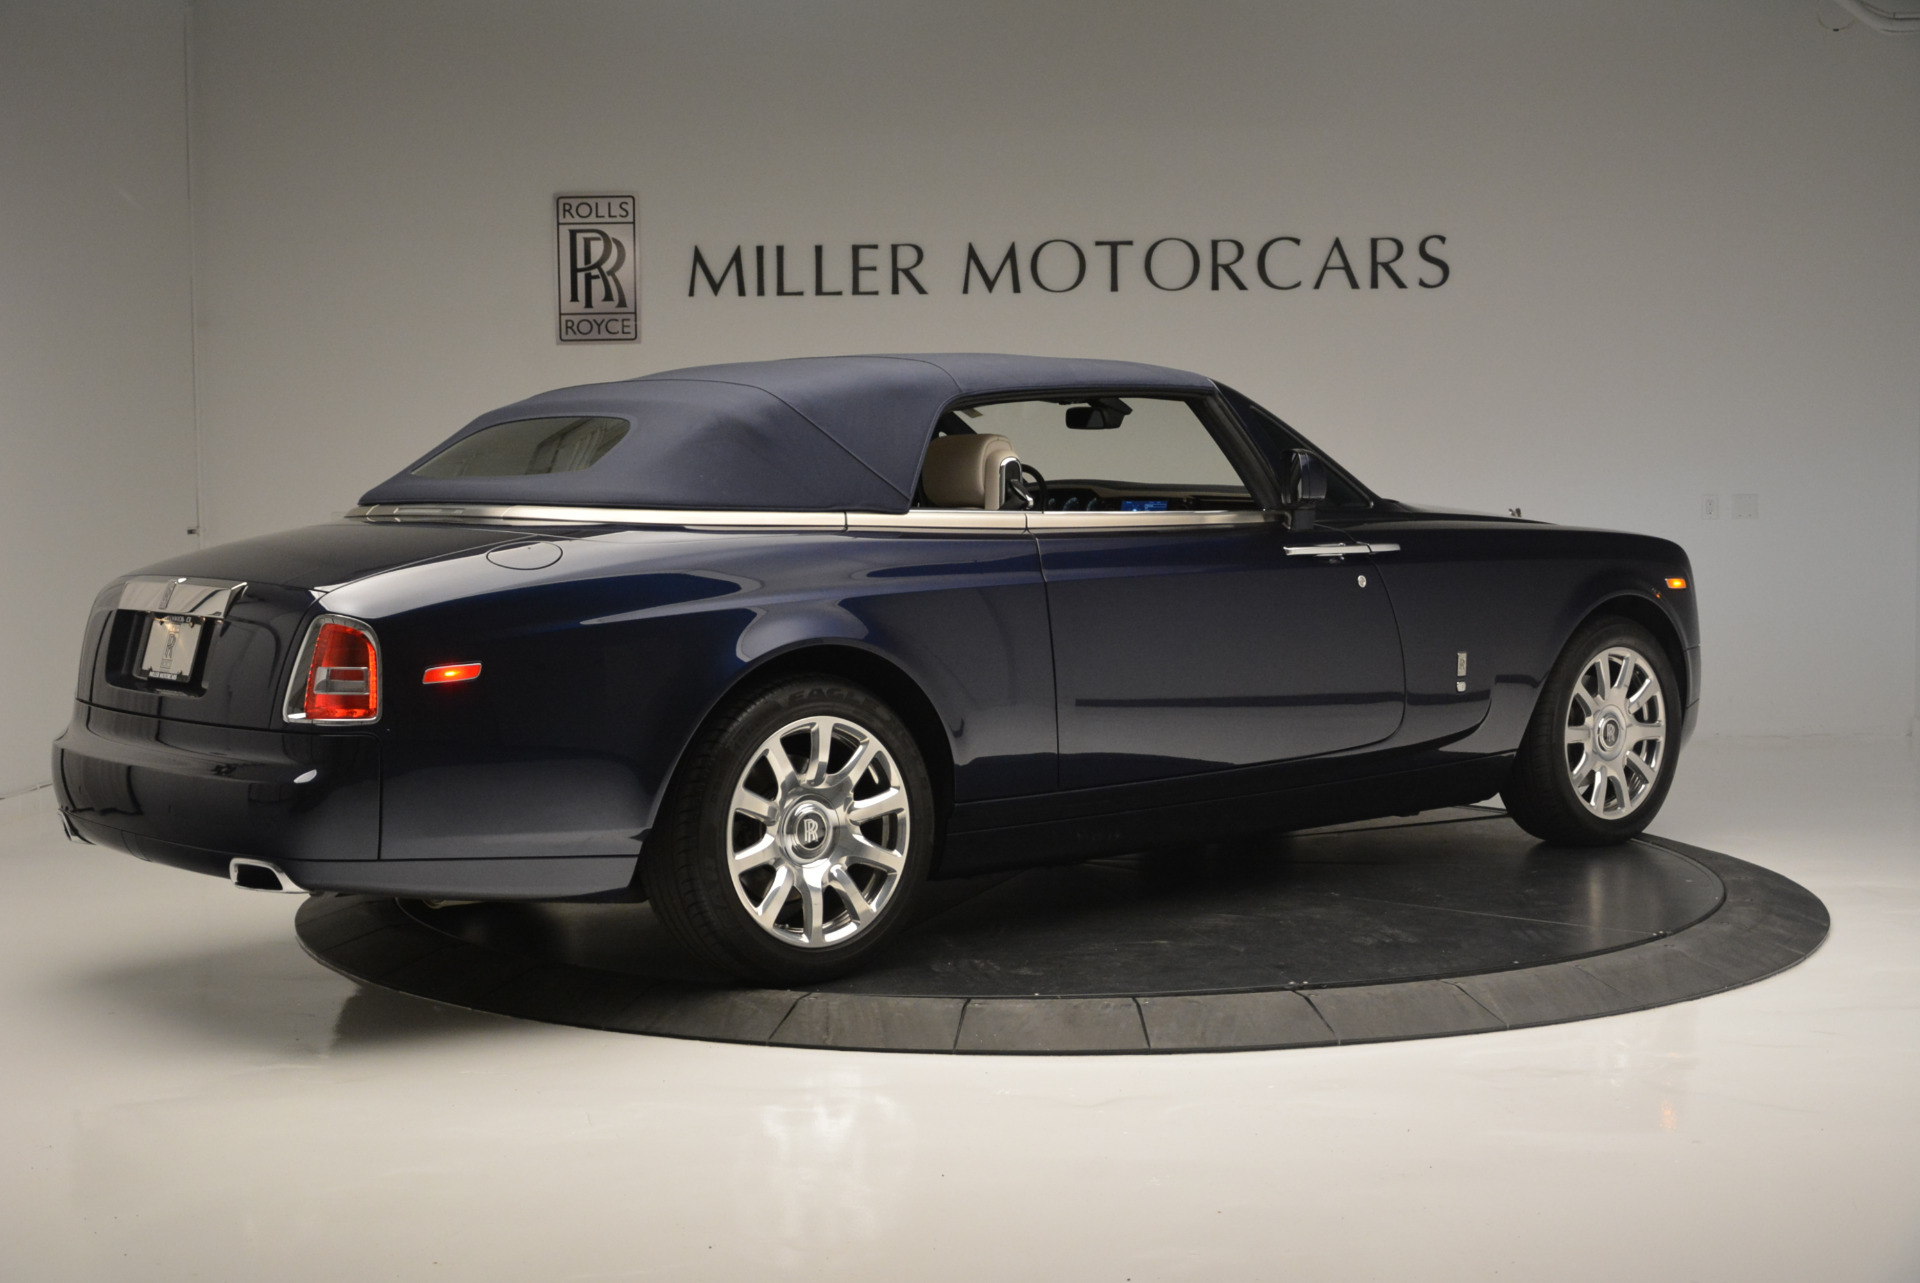 Used 2014 Rolls-Royce Phantom Drophead Coupe  For Sale In Westport, CT 2356_p13